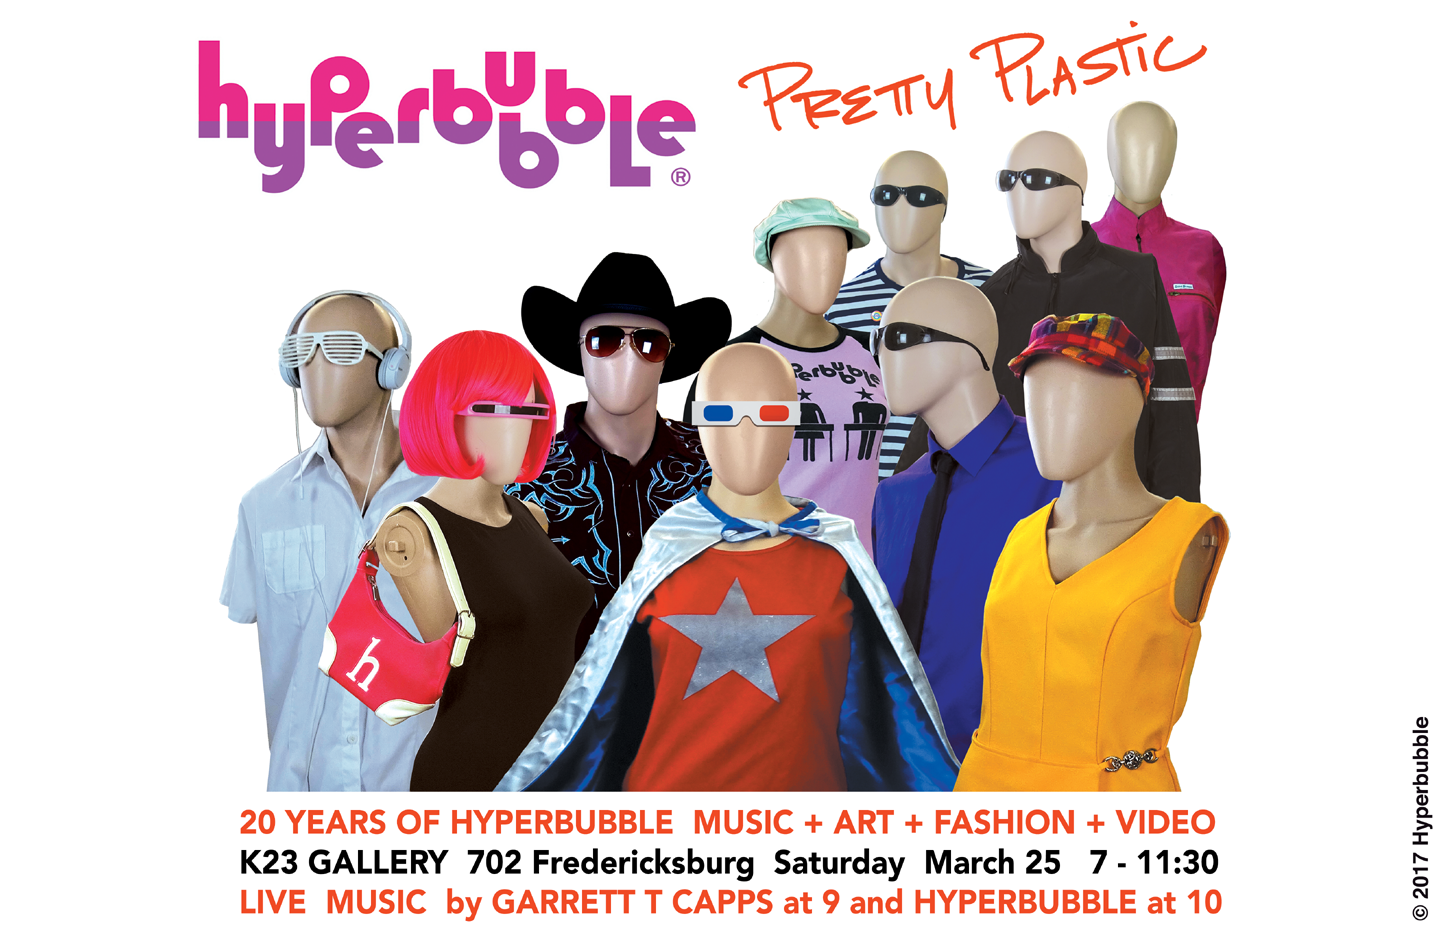 20 years of Hyperbubble music + art + video + fashion!